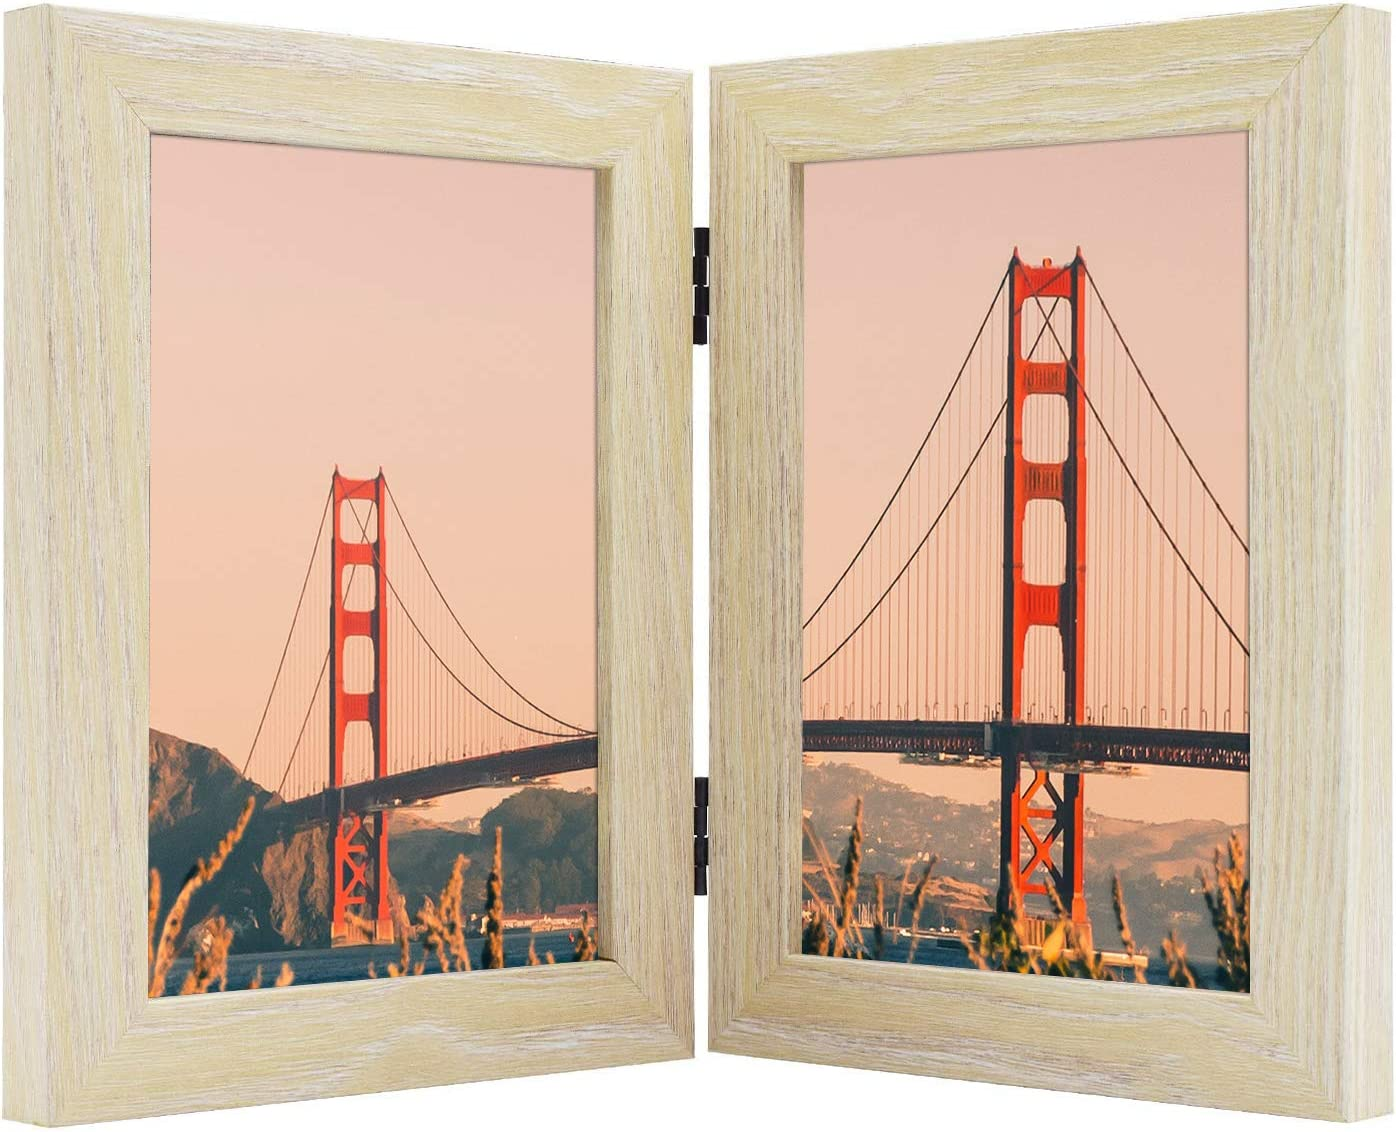 Frametory, Hinged Picture Frame with Glass Front Made to Display Two Pictures, Stands Vertically on Desktop or Table Top (Natural, 5x7 Double)